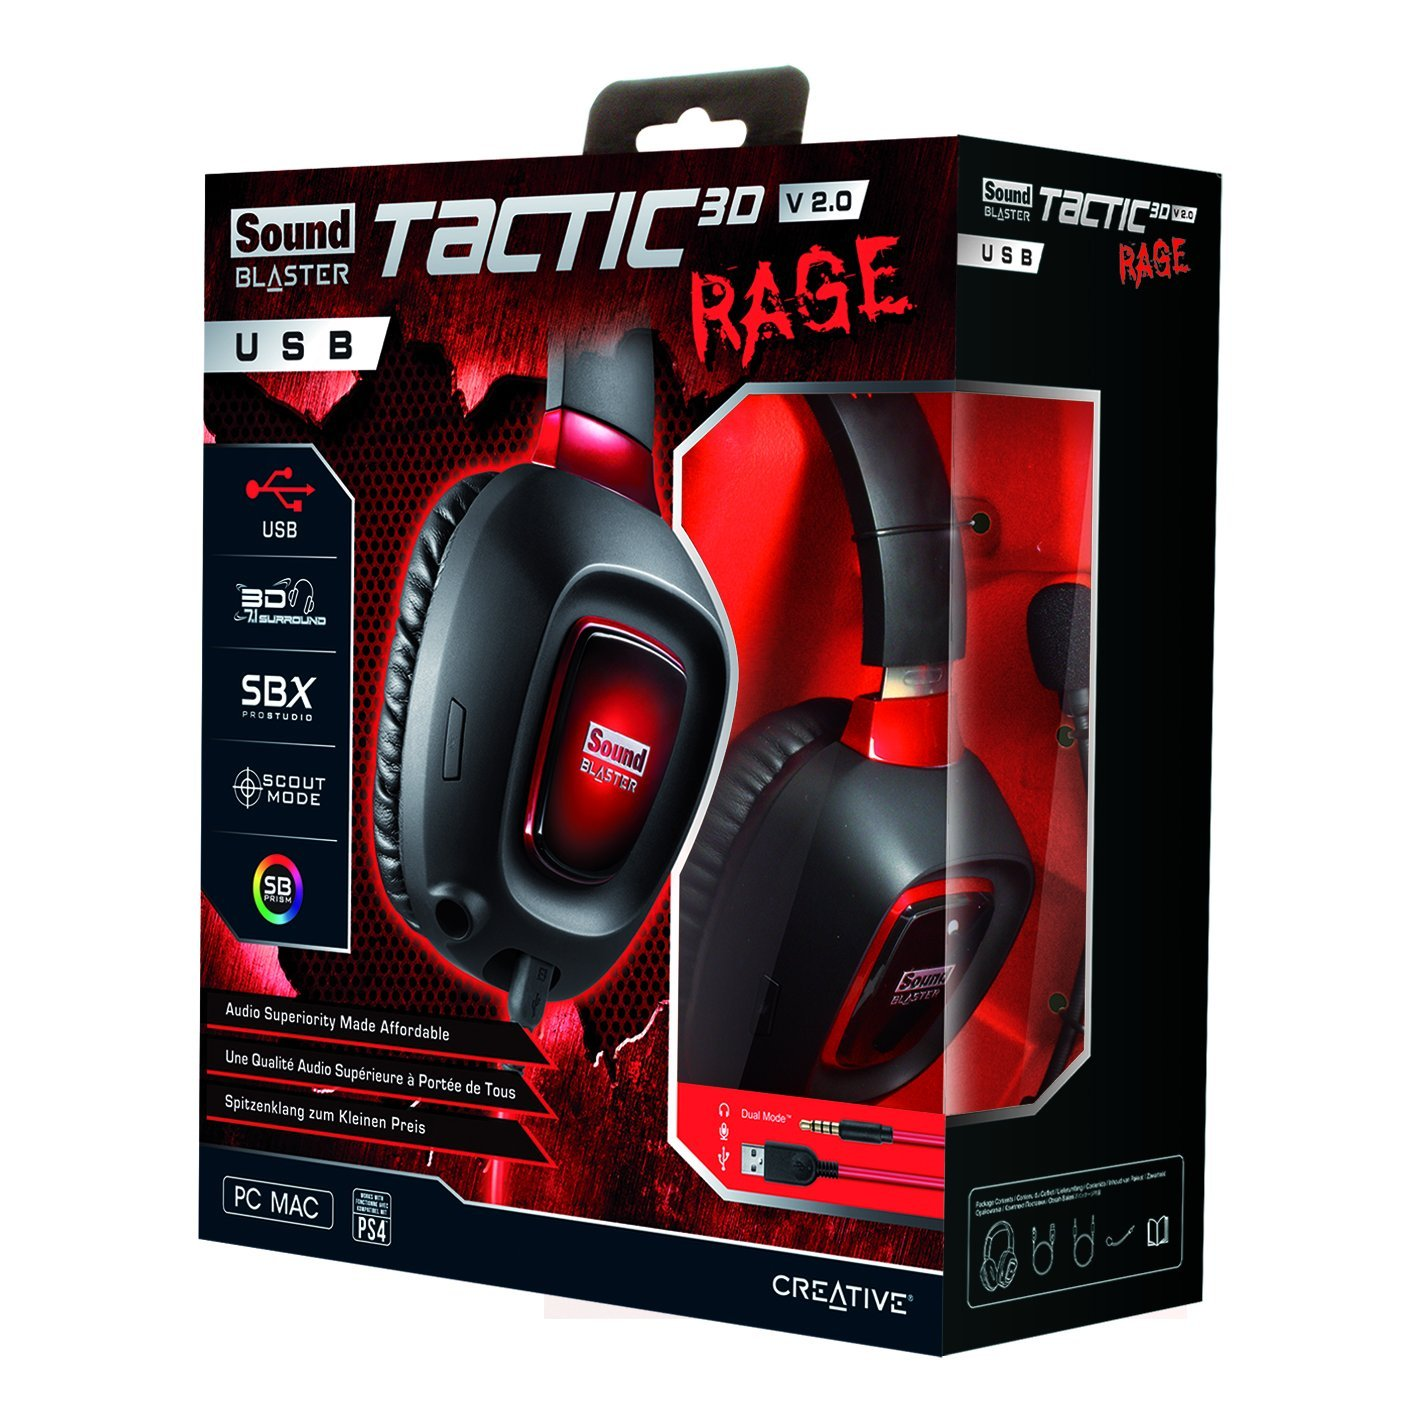 """Sound Blaster 70GH023000004 Sound Blaster Tactic3D Rage Headset - Stereo - USB - Wired - 32 Ohm - 20 Hz - 20 kHz - Over-the-head - Binaural - Circumaural - Noise Cancelling, Condenser Microphone"""